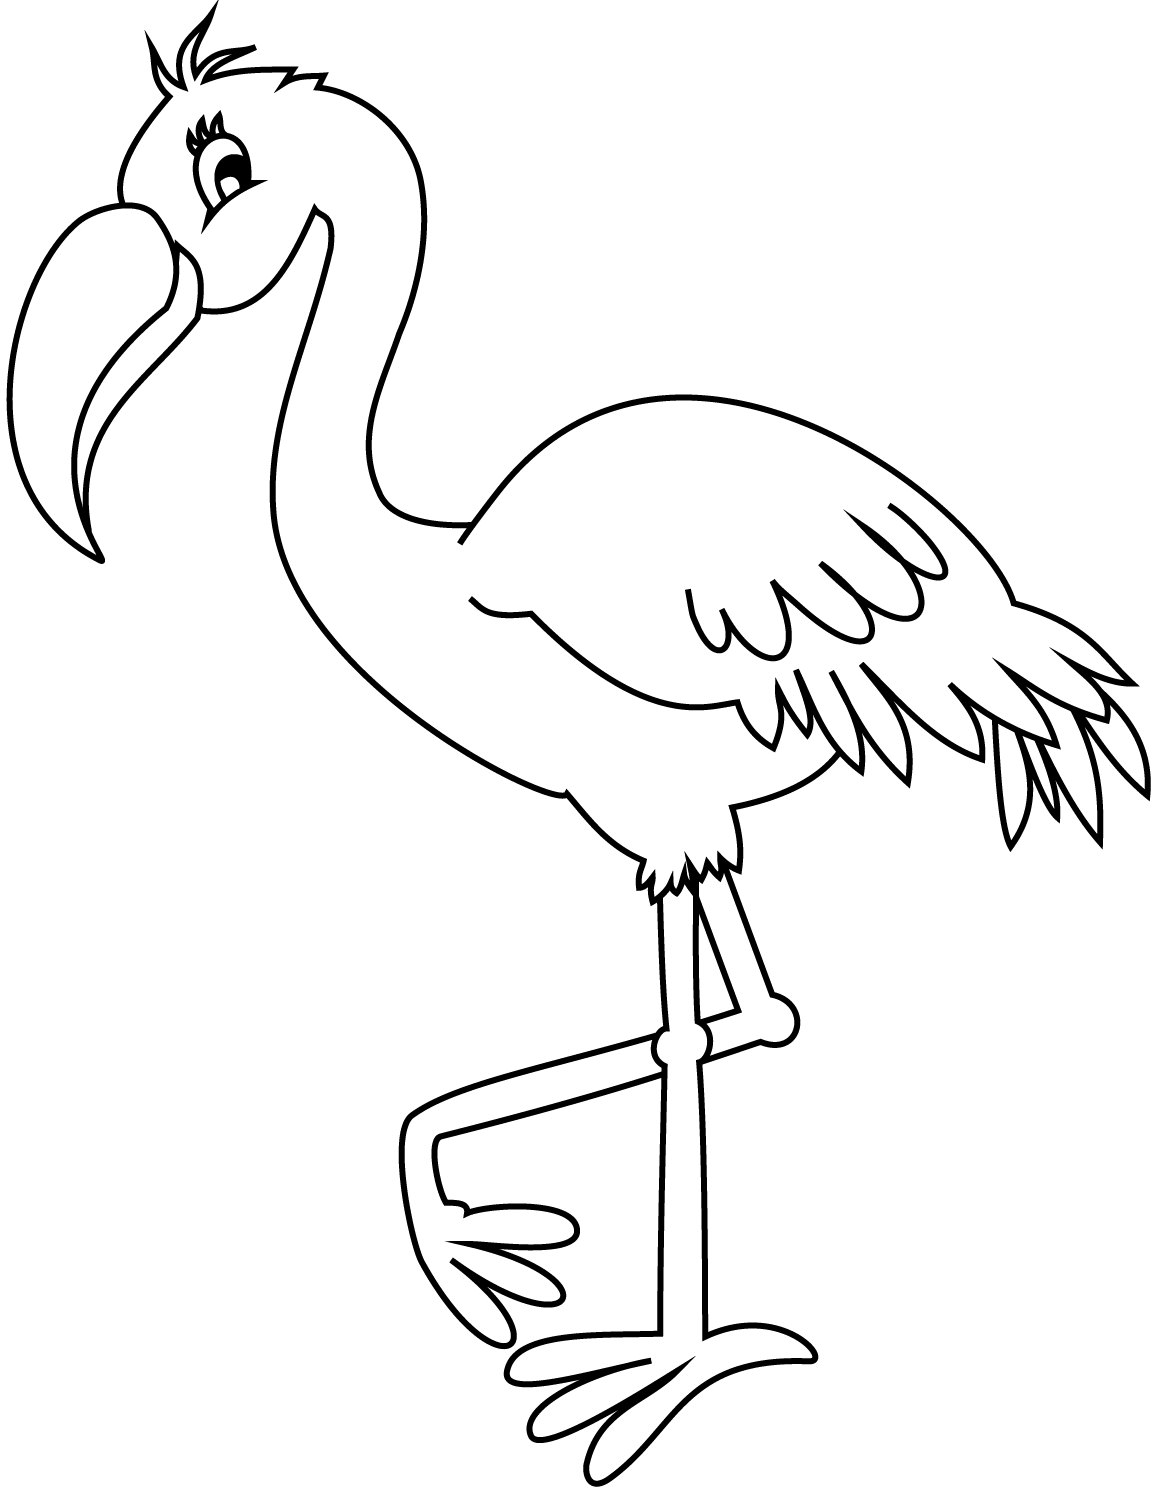 flamingo coloring page flamingo coloring pages to download and print for free flamingo coloring page